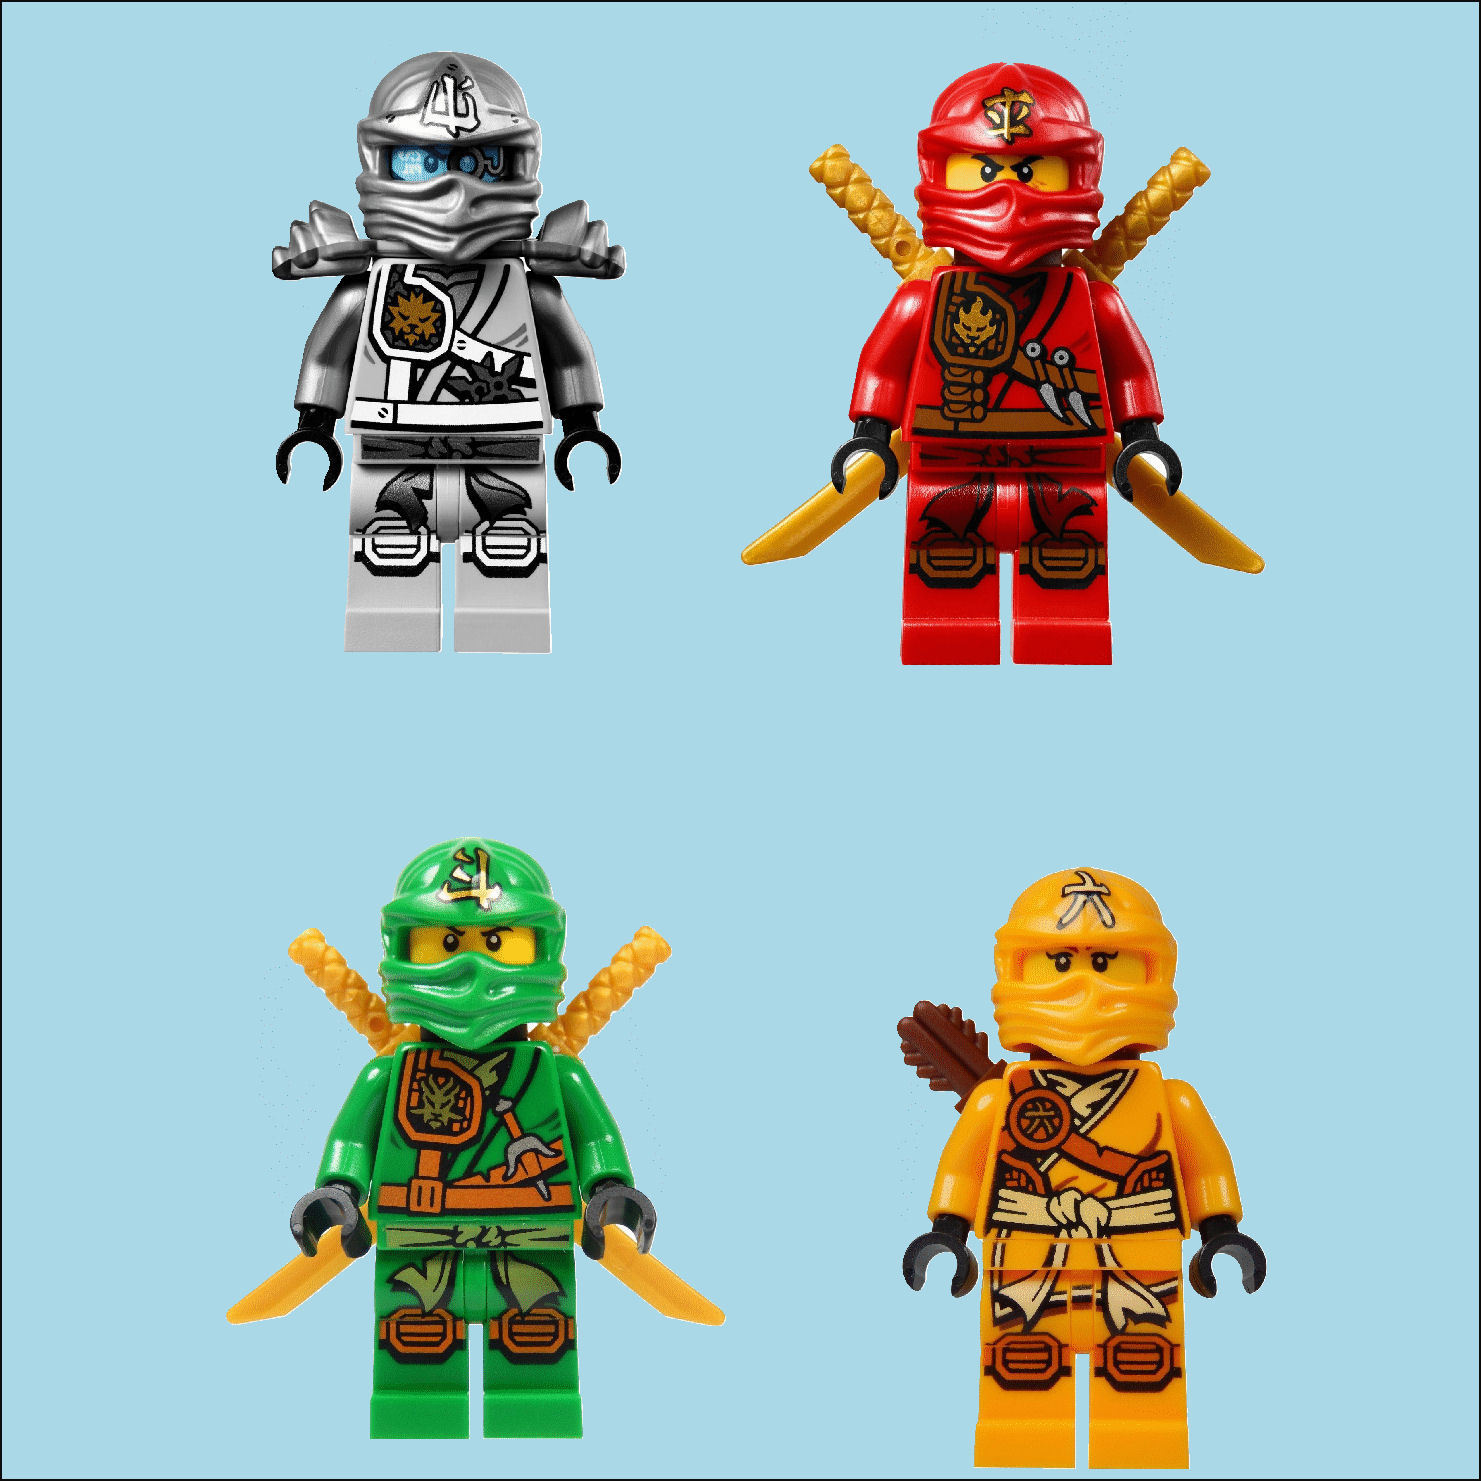 It's just a picture of Playful Pictures of Ninjago Characters